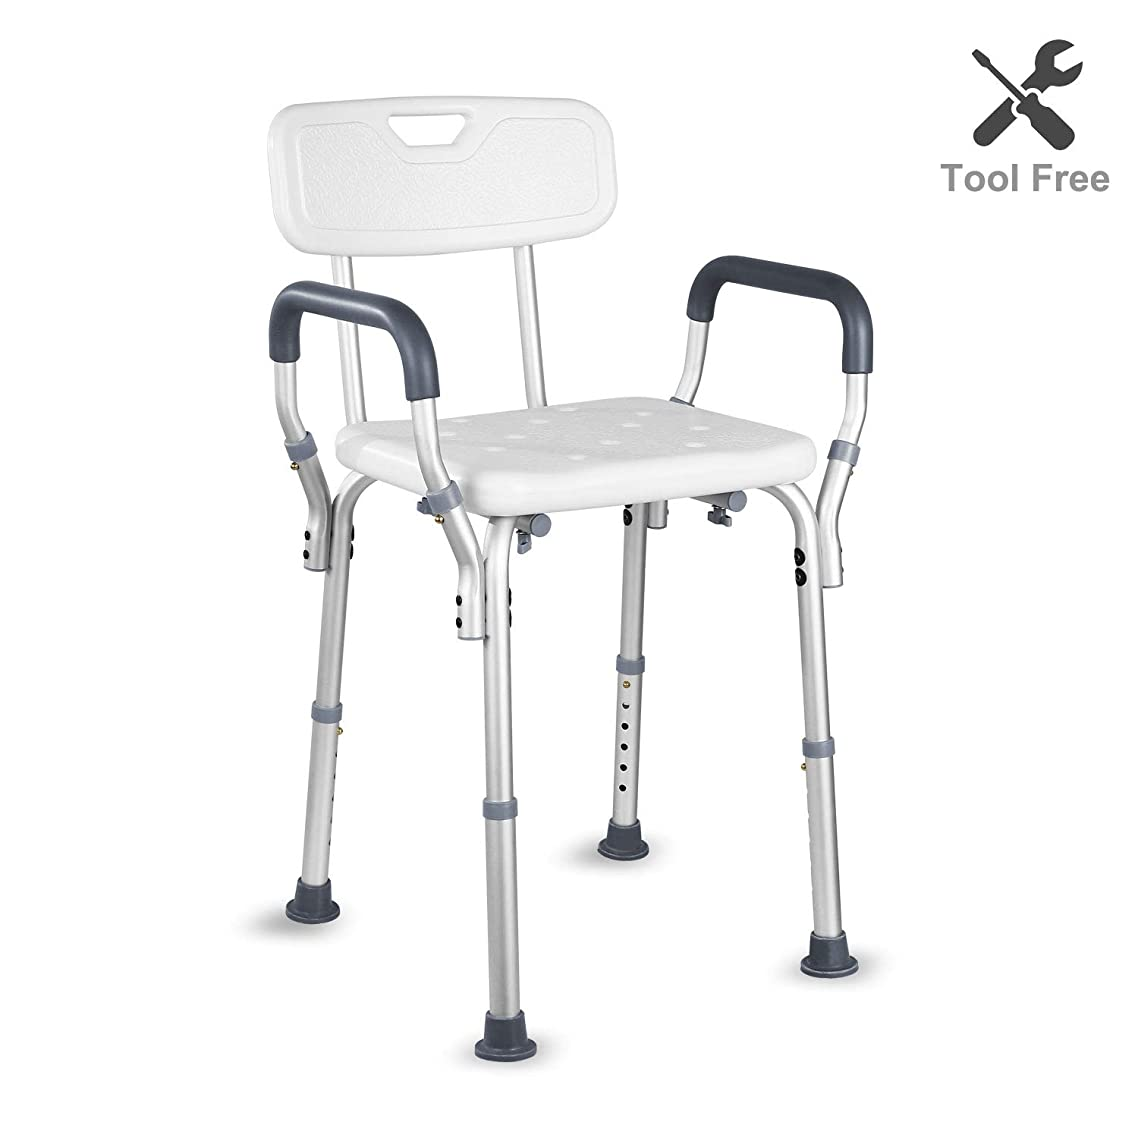 HAIRBY Shower Chair with Arms and Back Adjustable Height Medical Bath Tool Anti Skid and No Slip Bathtub Seat for Handicap, Disabled, Seniors and Elderly